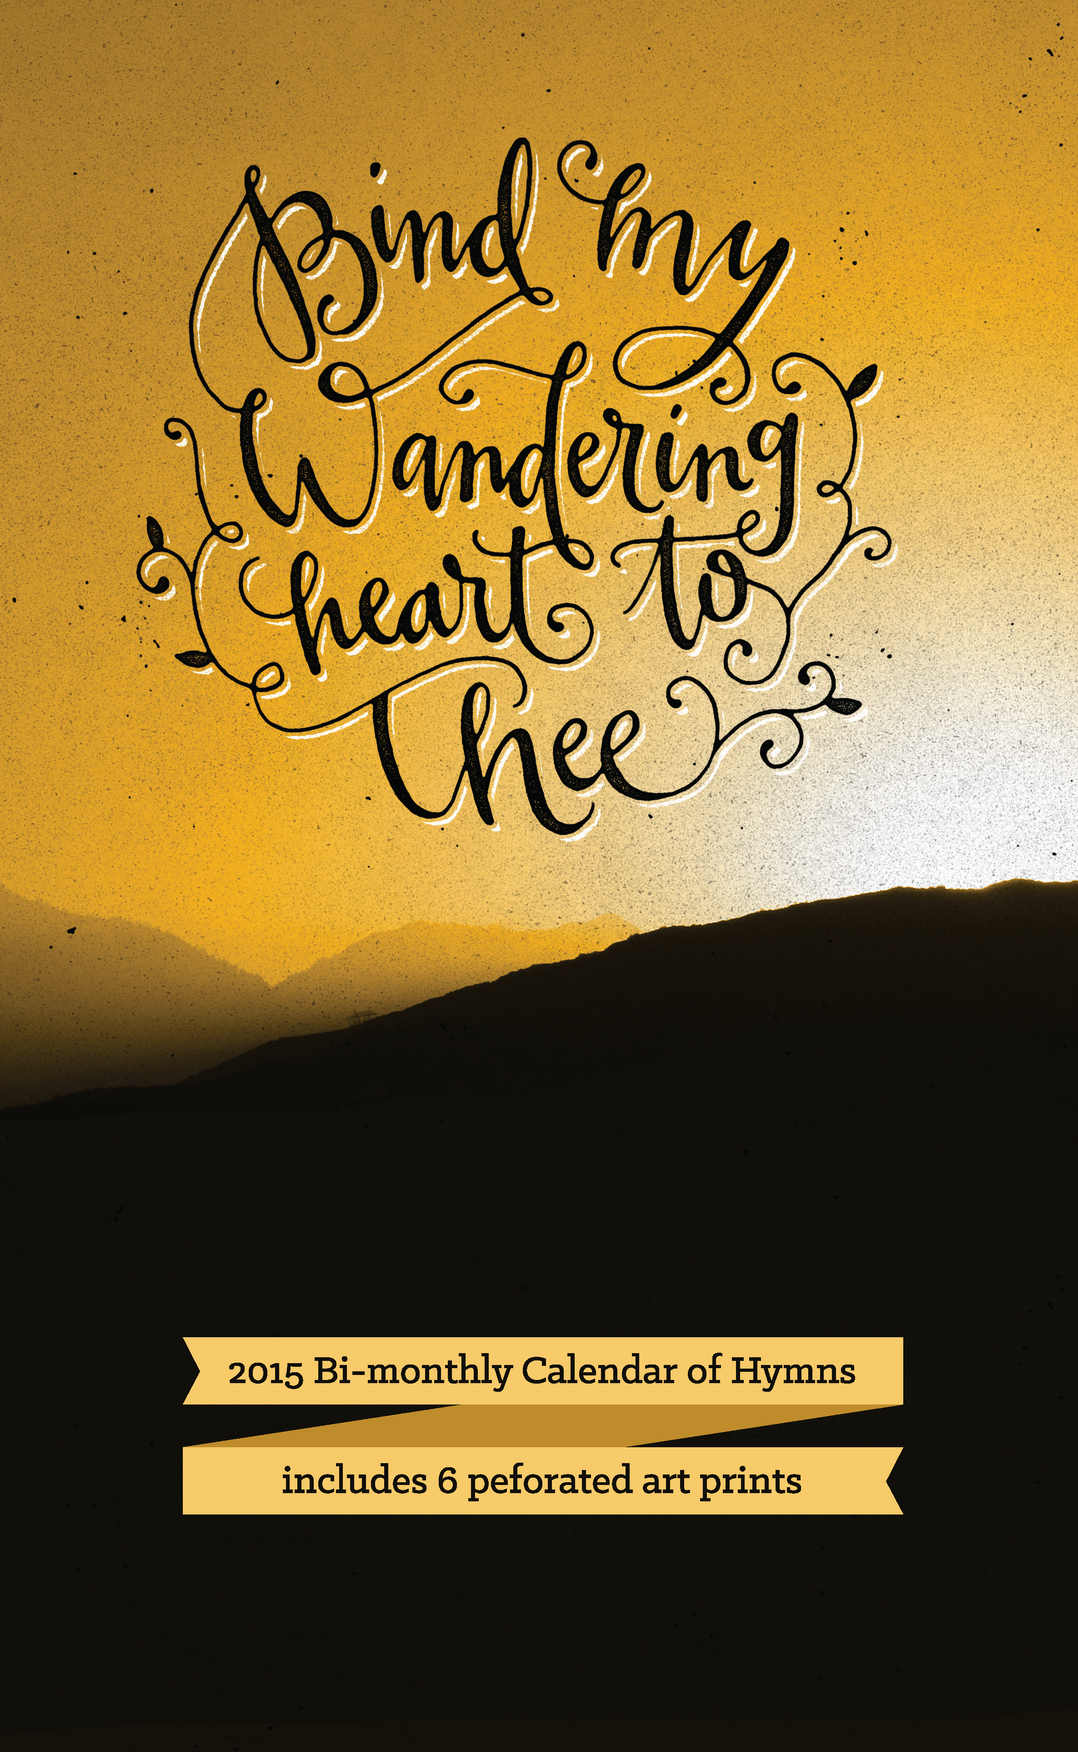 calendar_Page_1.png